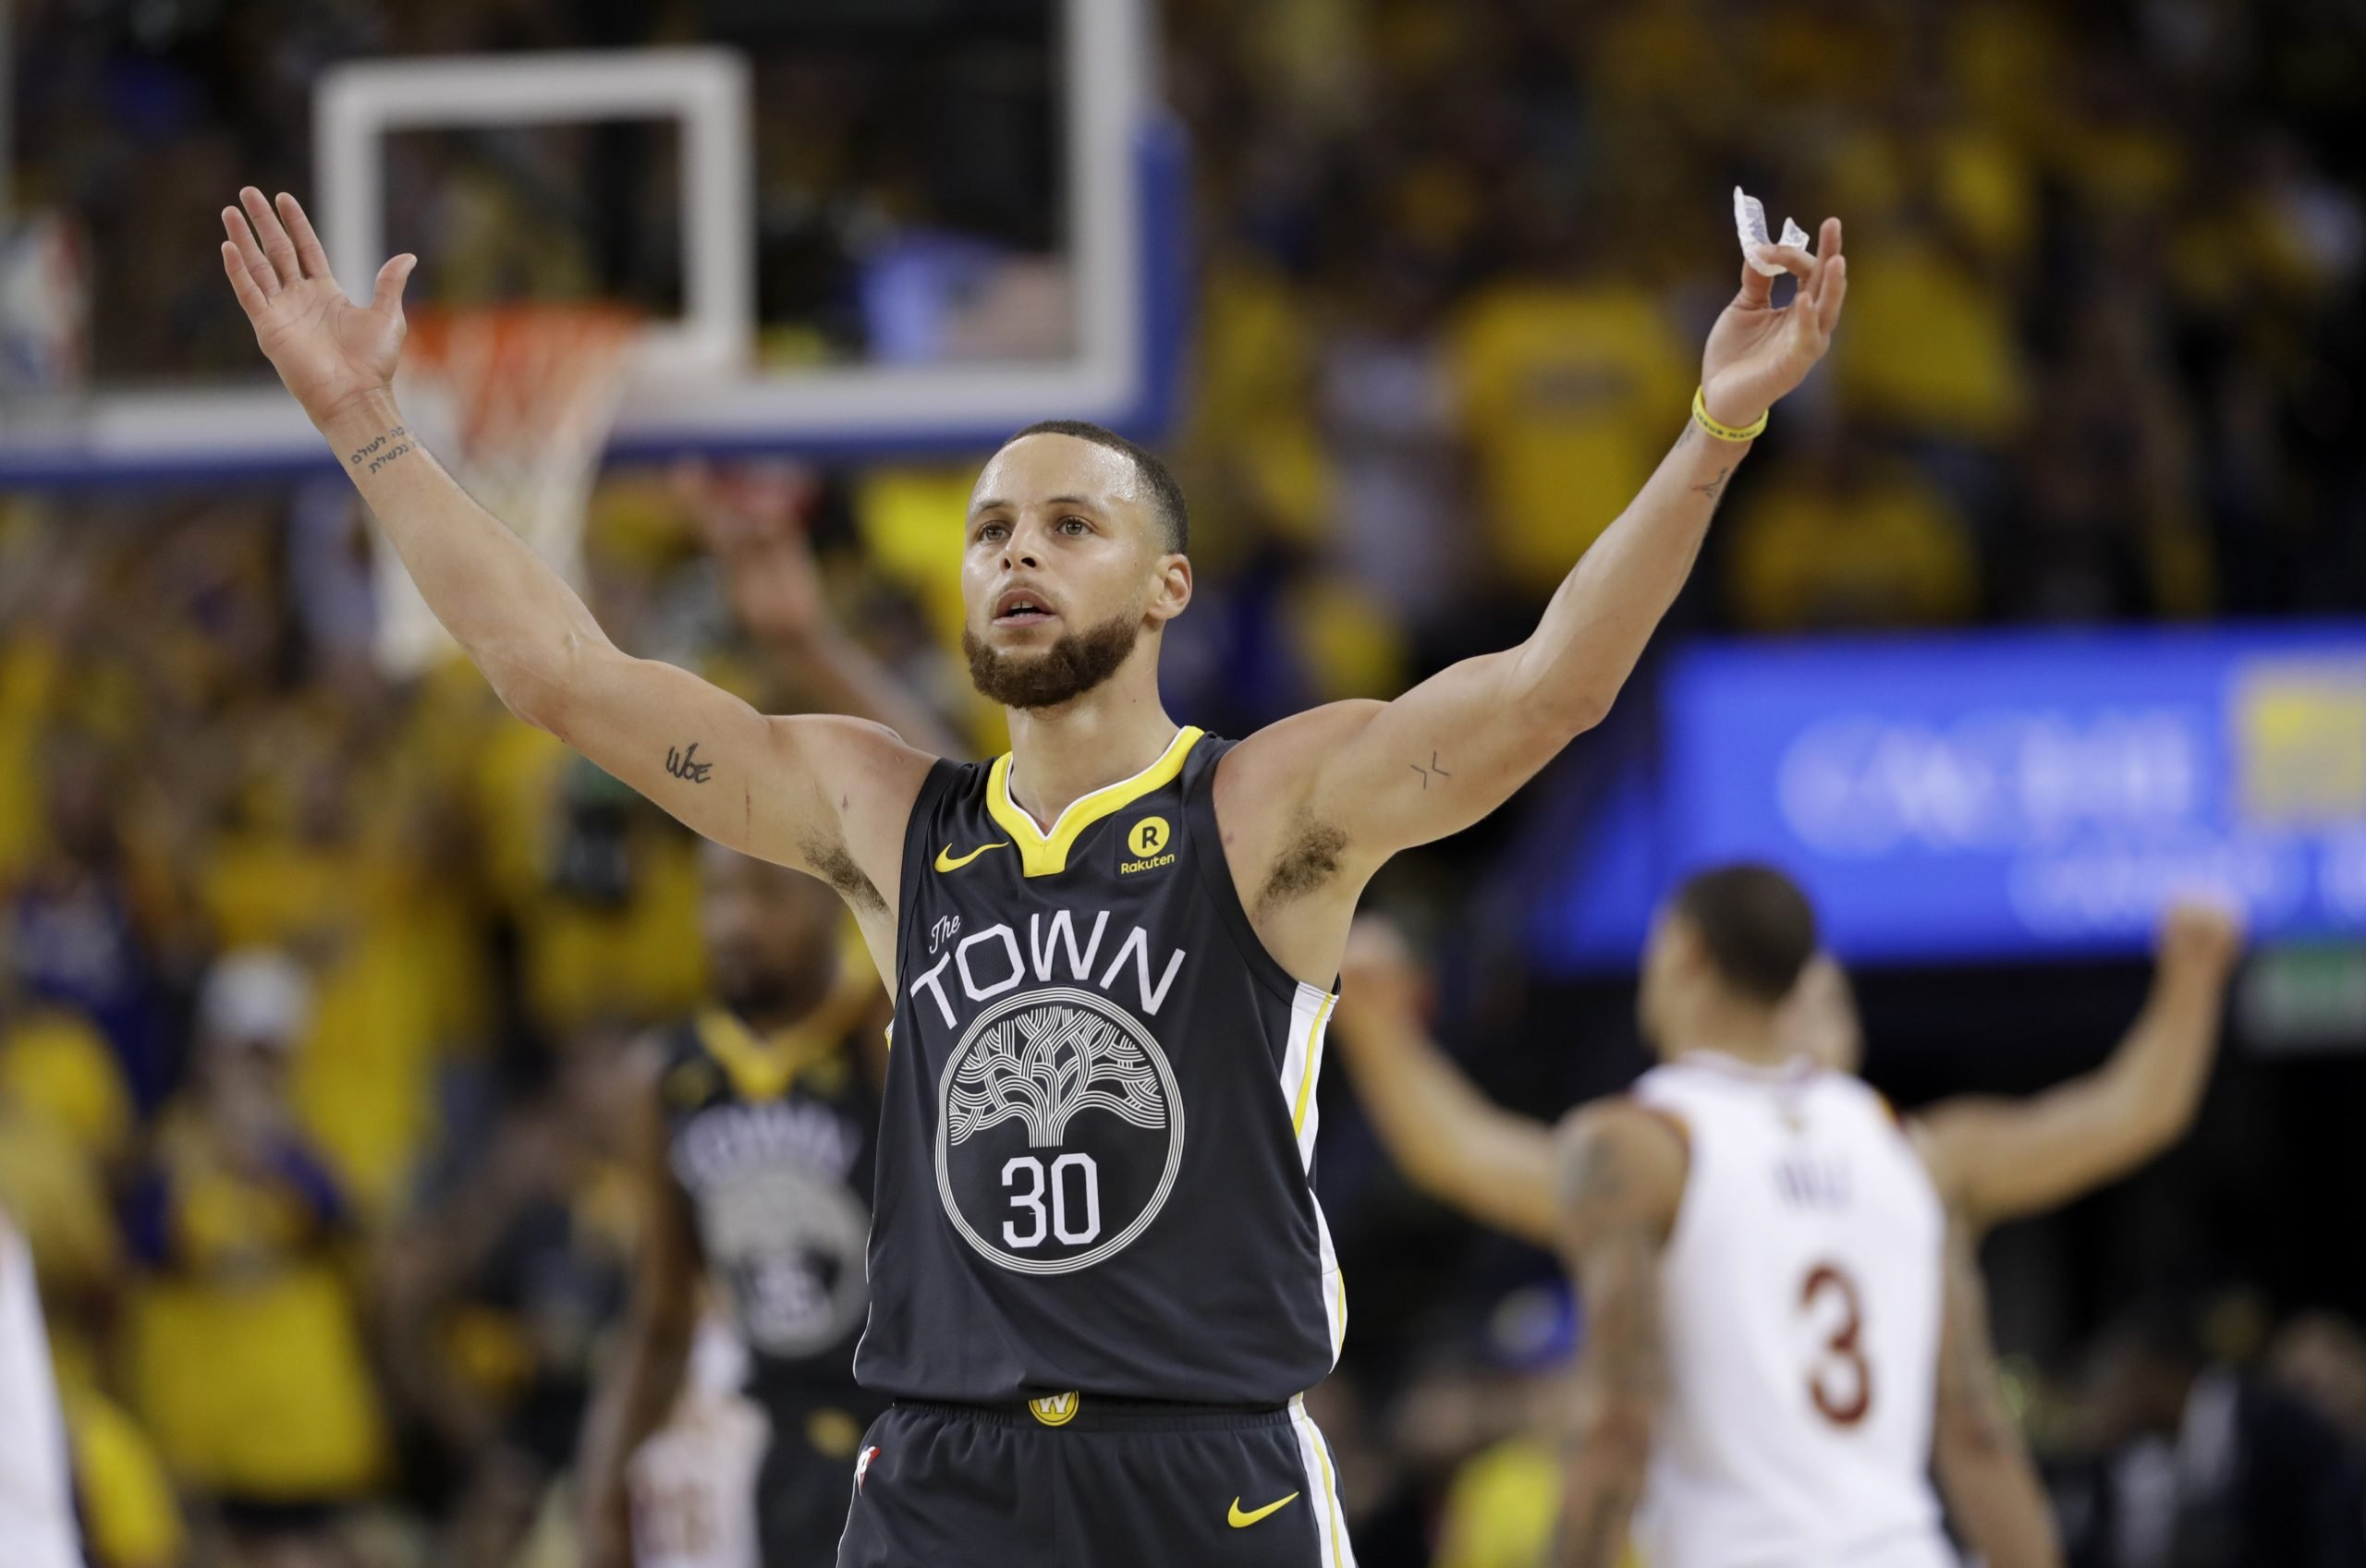 Curry sets 3-point record as Warriors roll over Cavs to go up 2-0 in NBA Finals